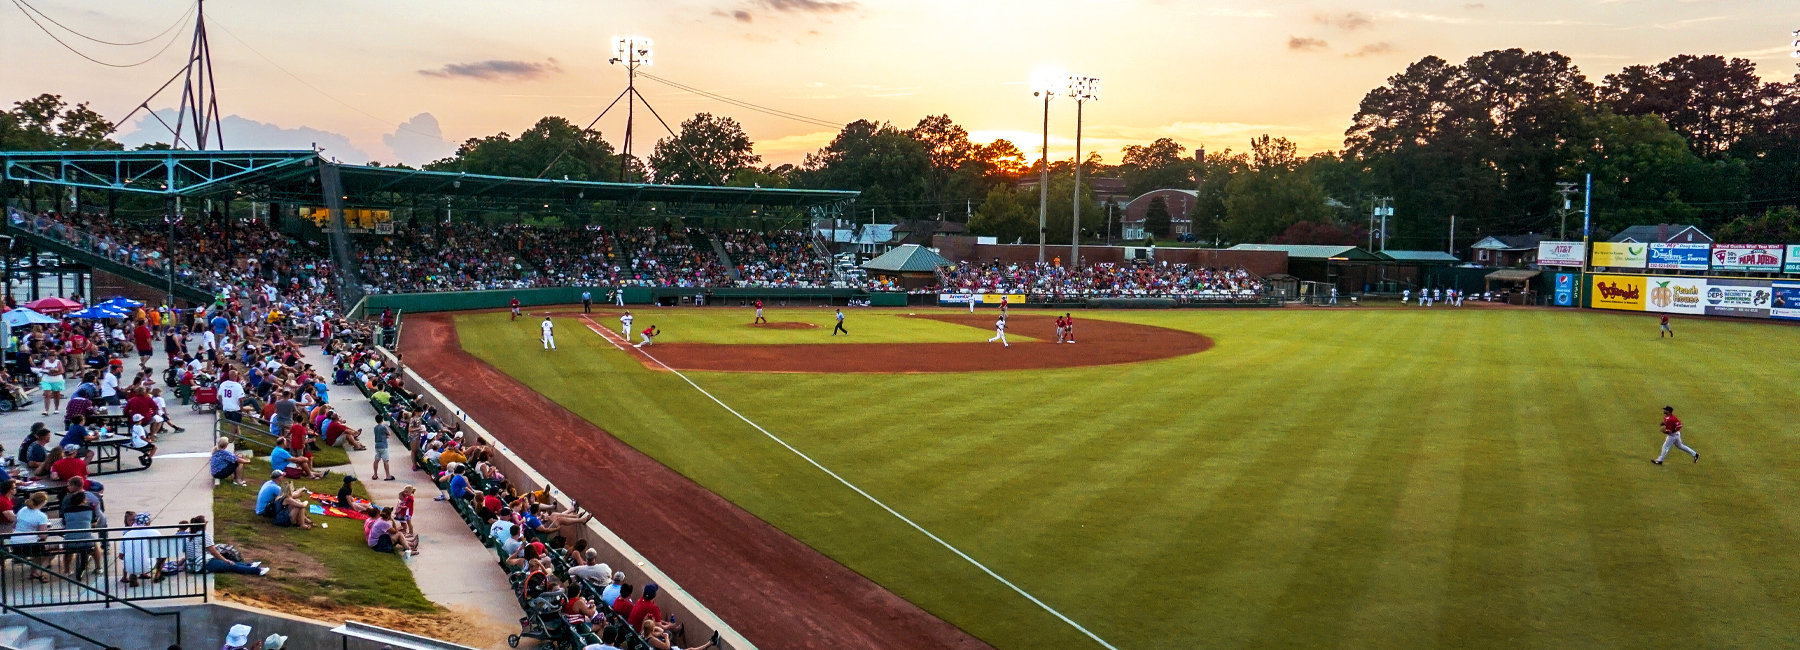 Down East Wood Ducks Fans Enjoy A Game At Grainger Stadium In Kinston North Carolina